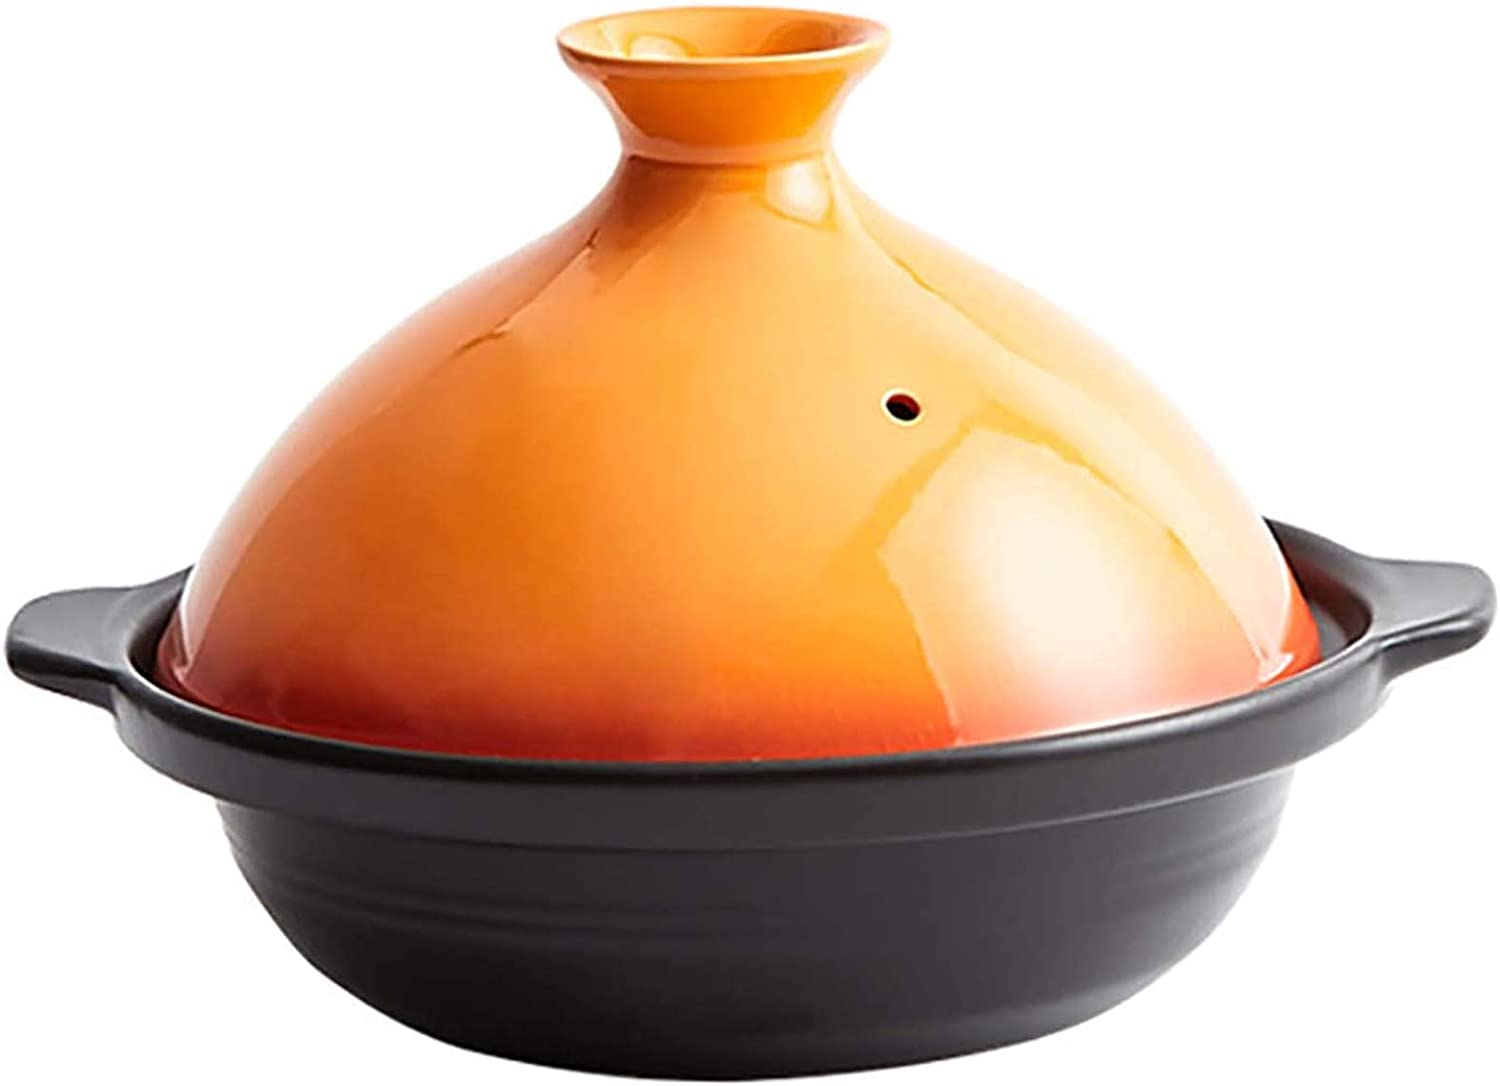 Cooking Tagine Pot, Enameled Cast Iron Moroccan Tagine Cooker Pot with Cone-Shaped Lidfor Different Cooking Styles,0.9L